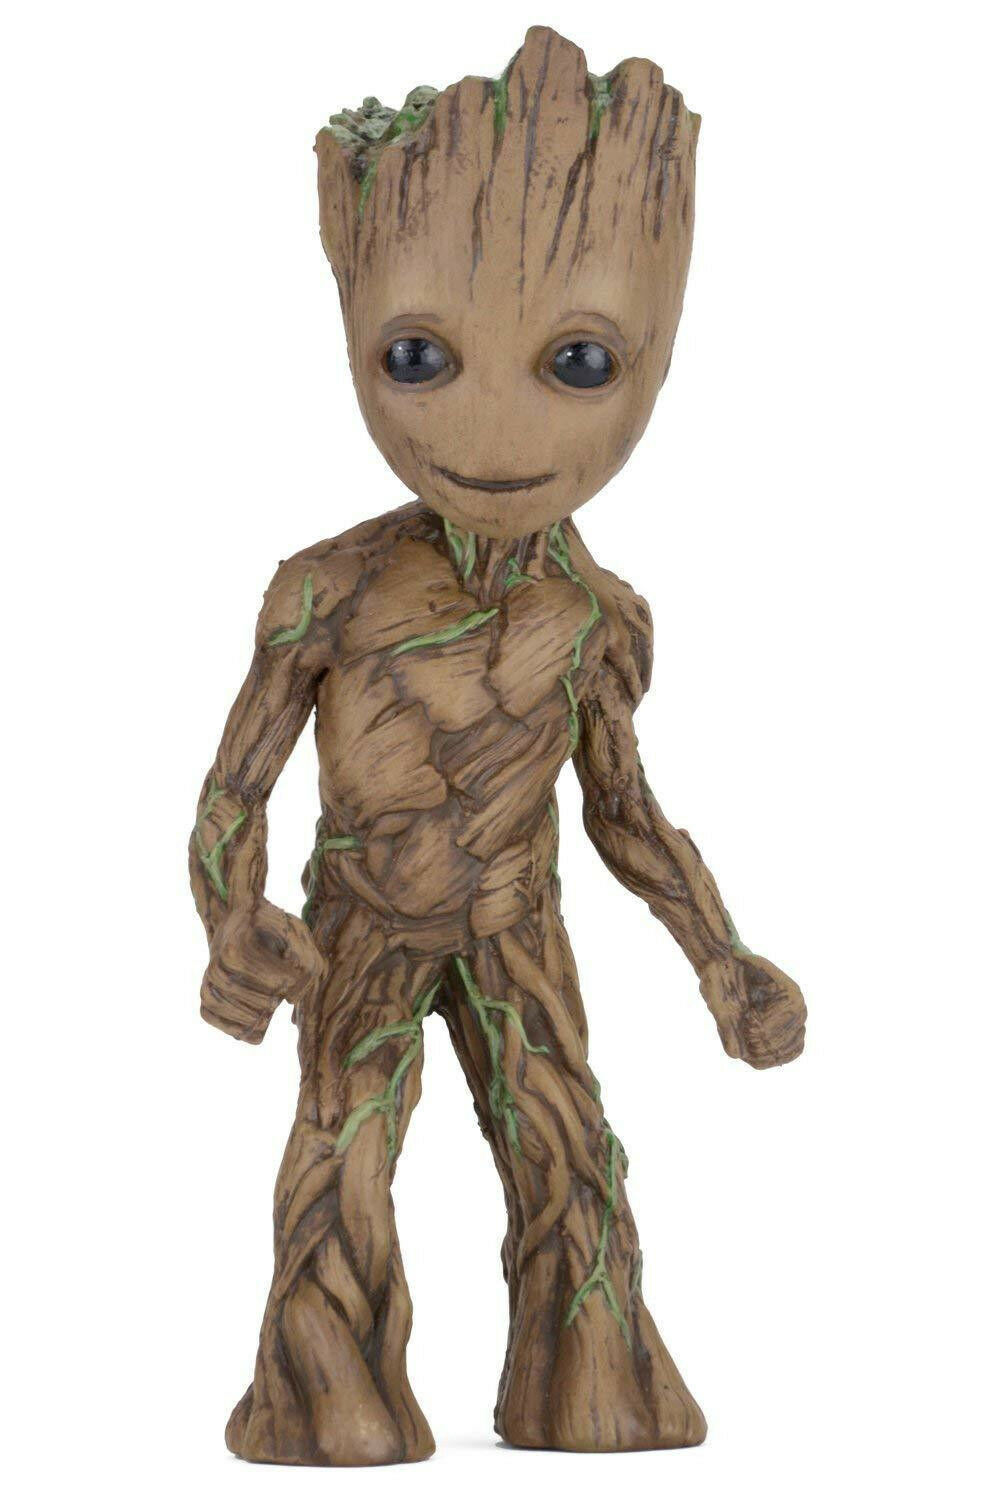 Guardians Of The Galaxy 2 Life Größe Baby Groot Figure